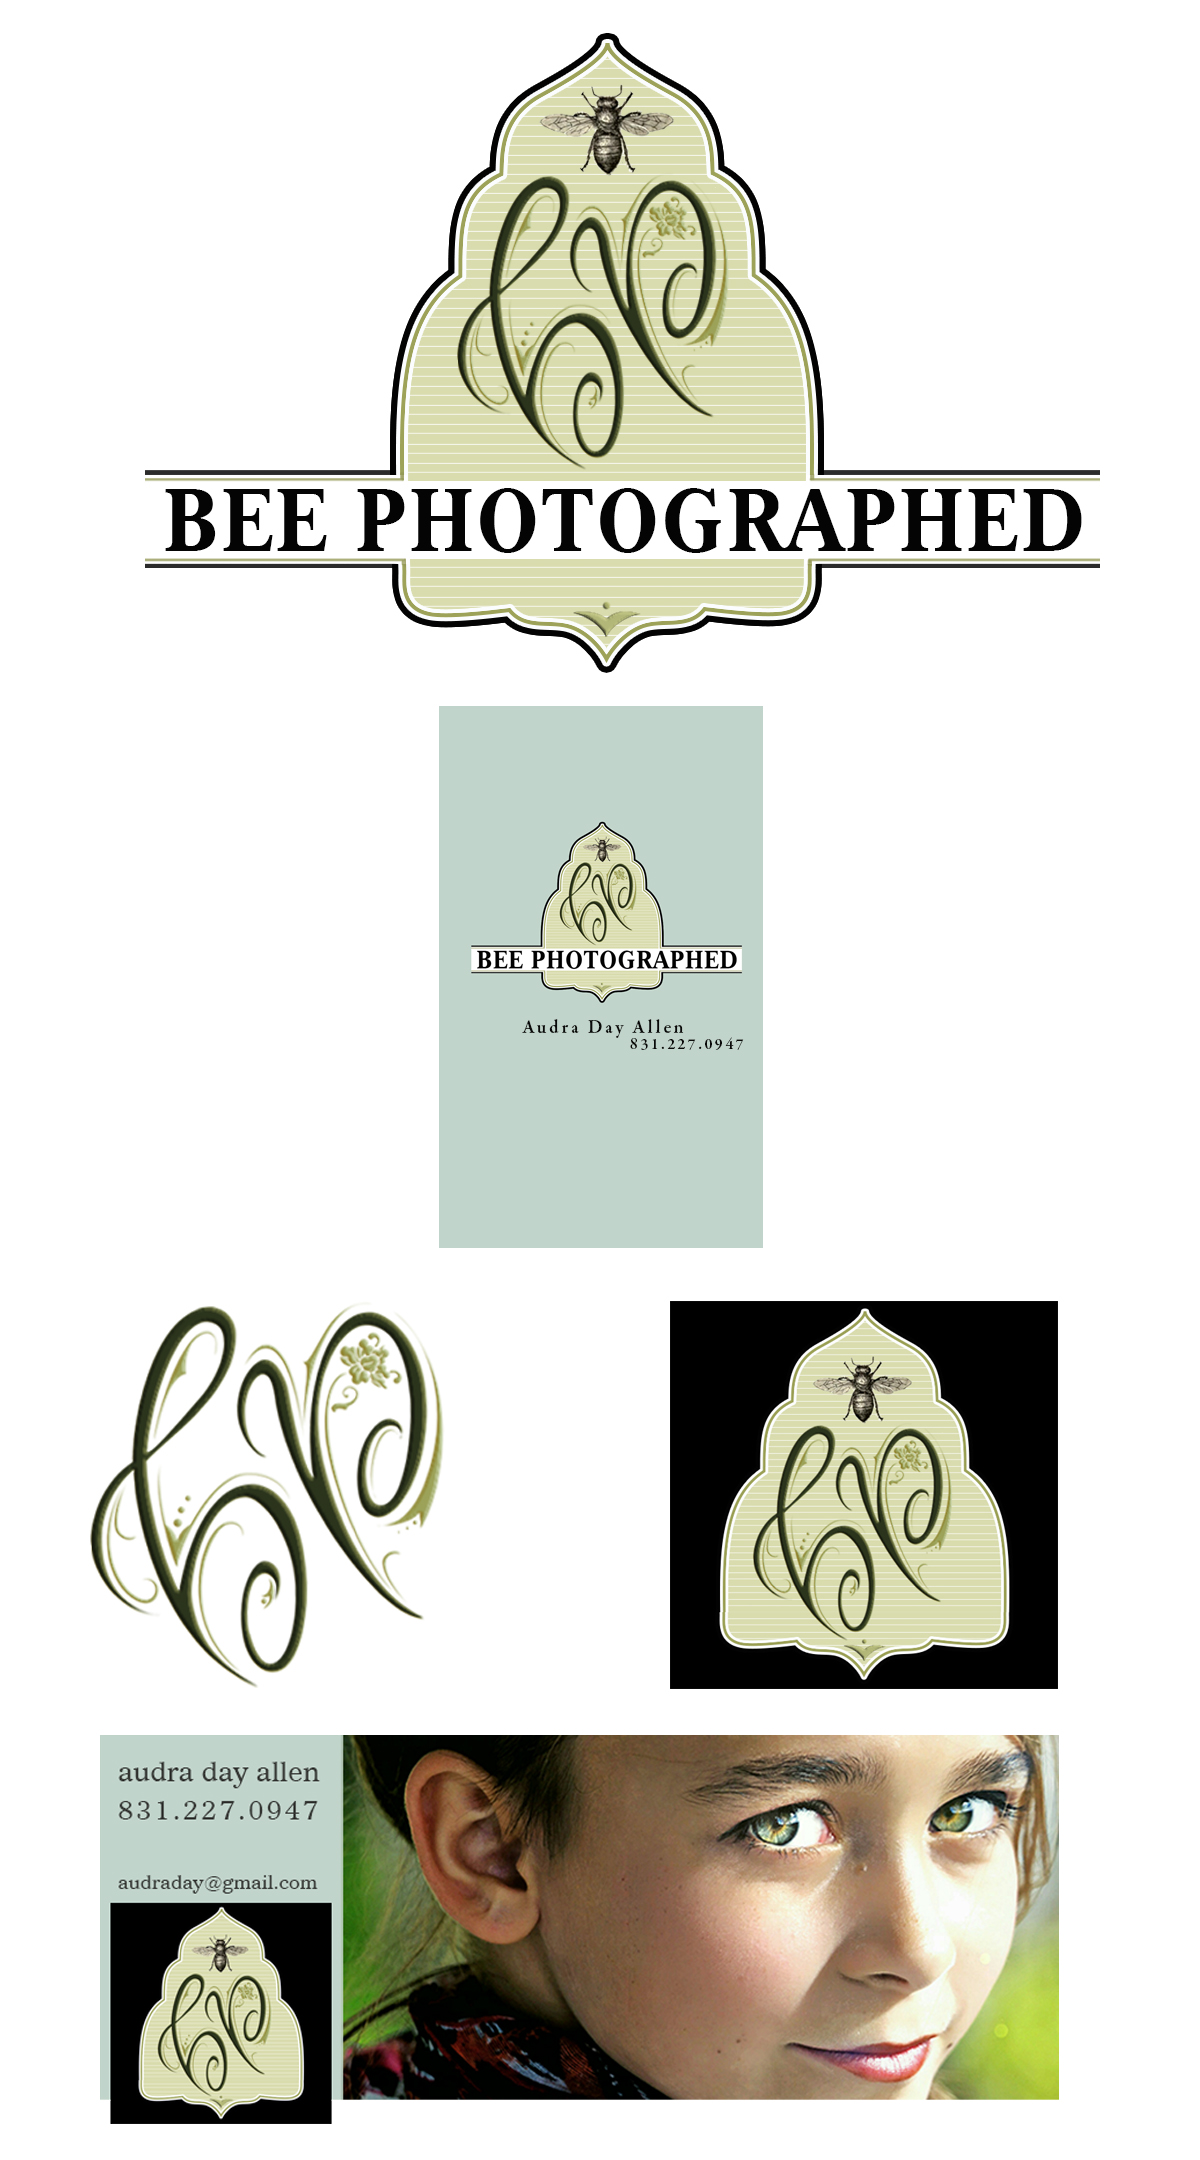 bee photographed